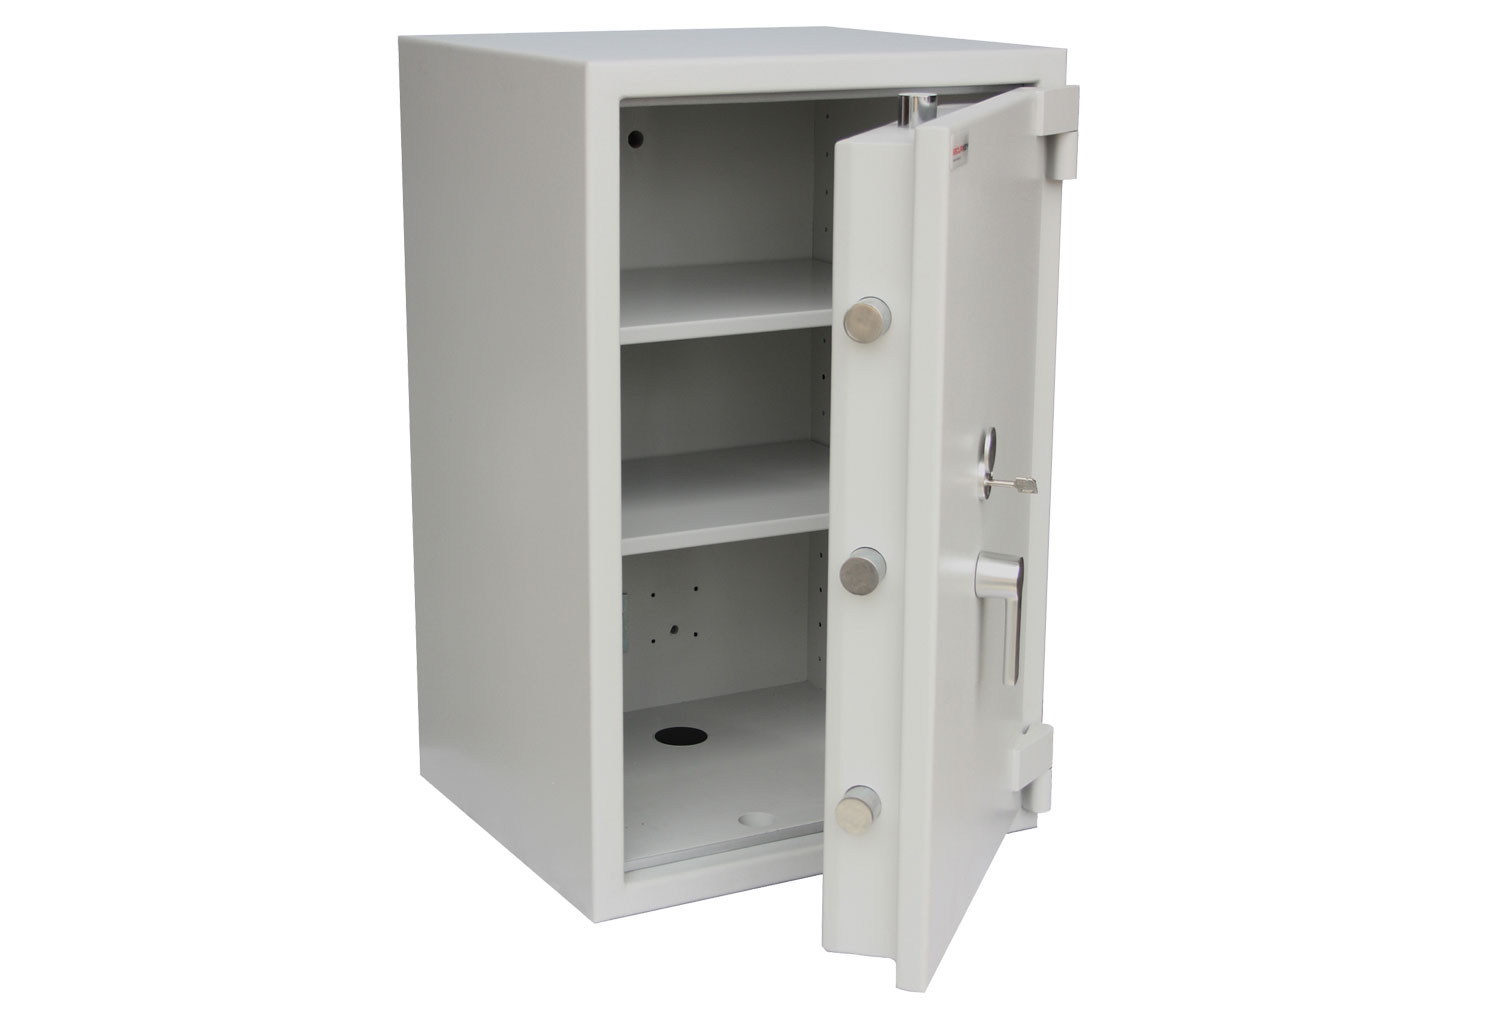 Securikey Euro Grade 3175N Safe With Key Lock (176ltrs)